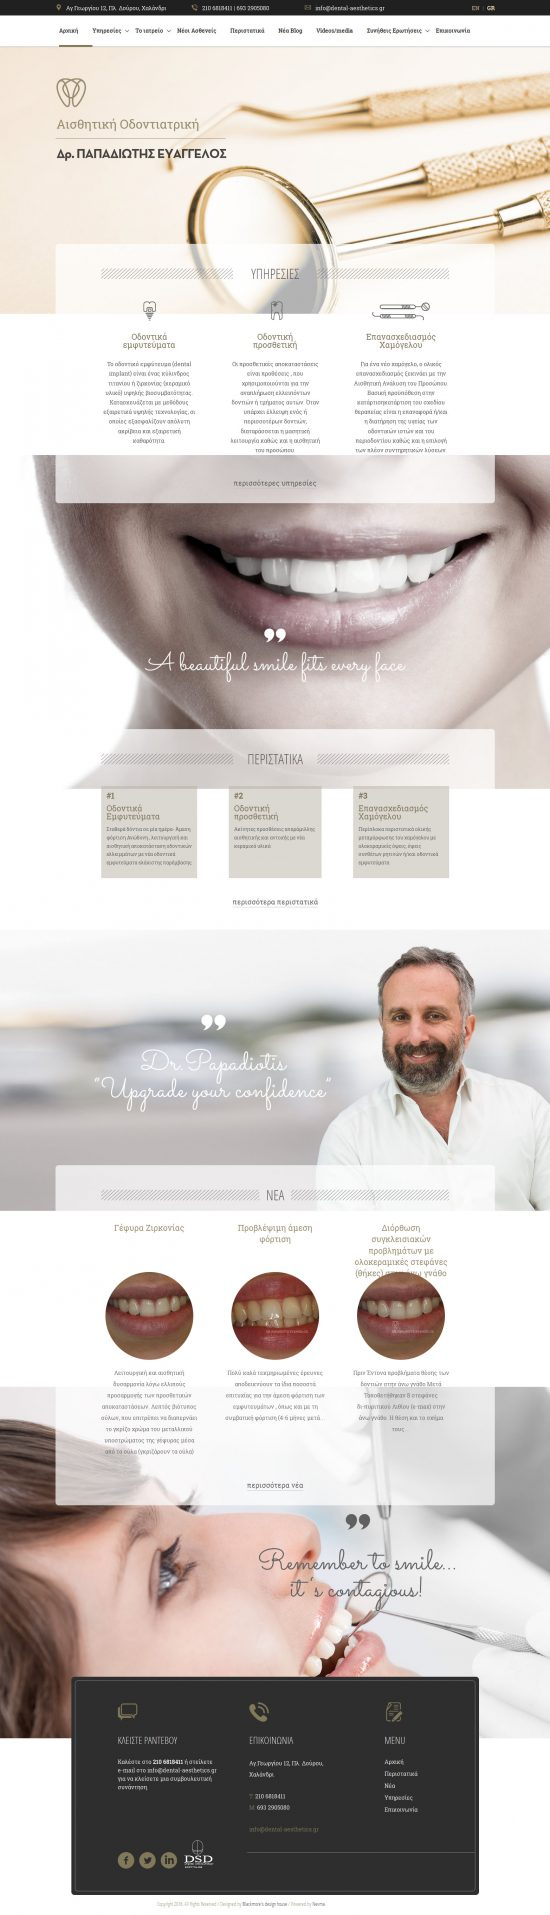 dental-Website-1